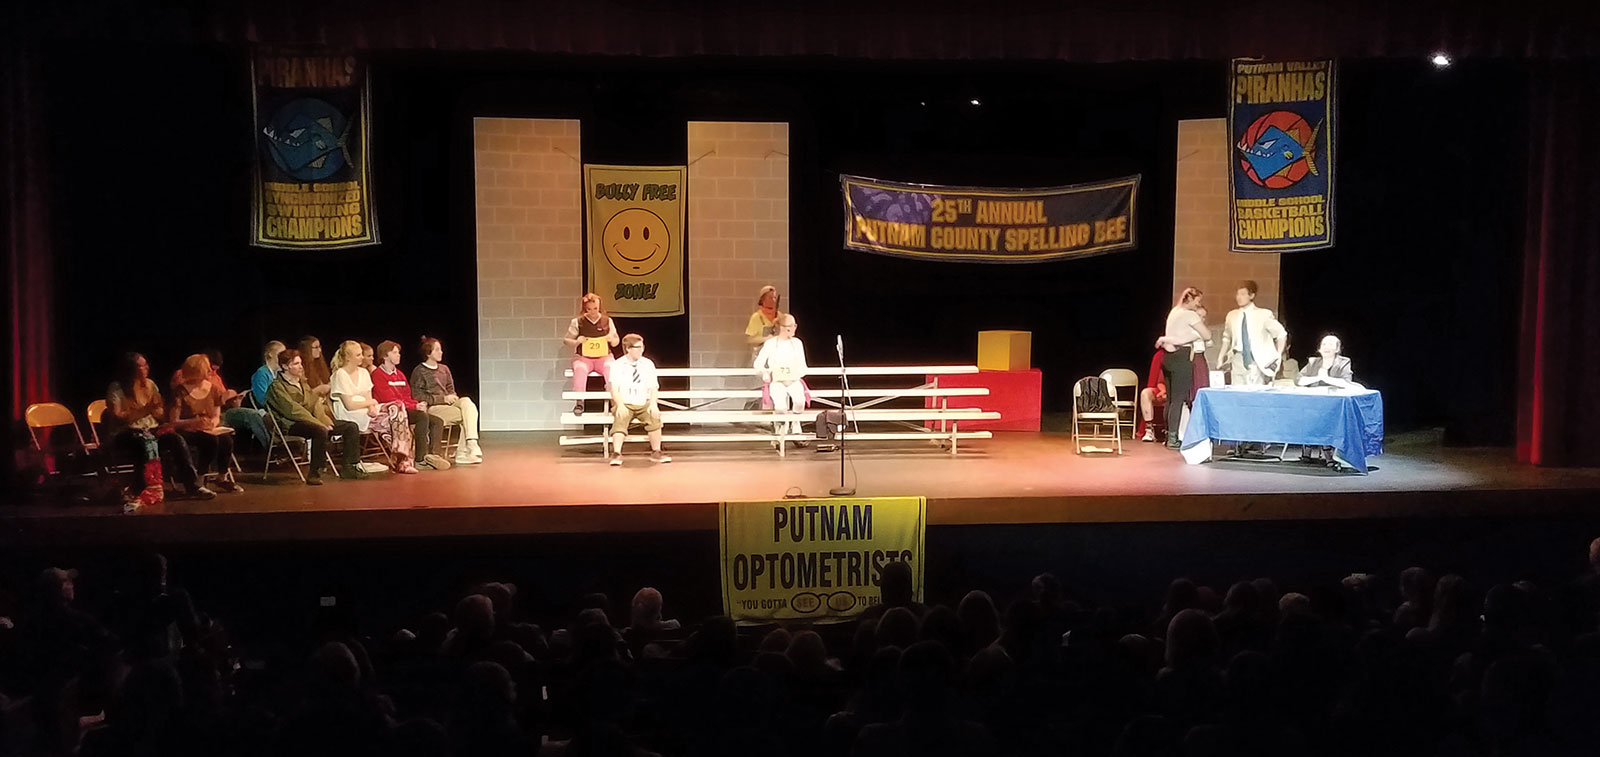 Act 2 Photo of The Putnam County Spelling Bee opening night at Middle Park High School.